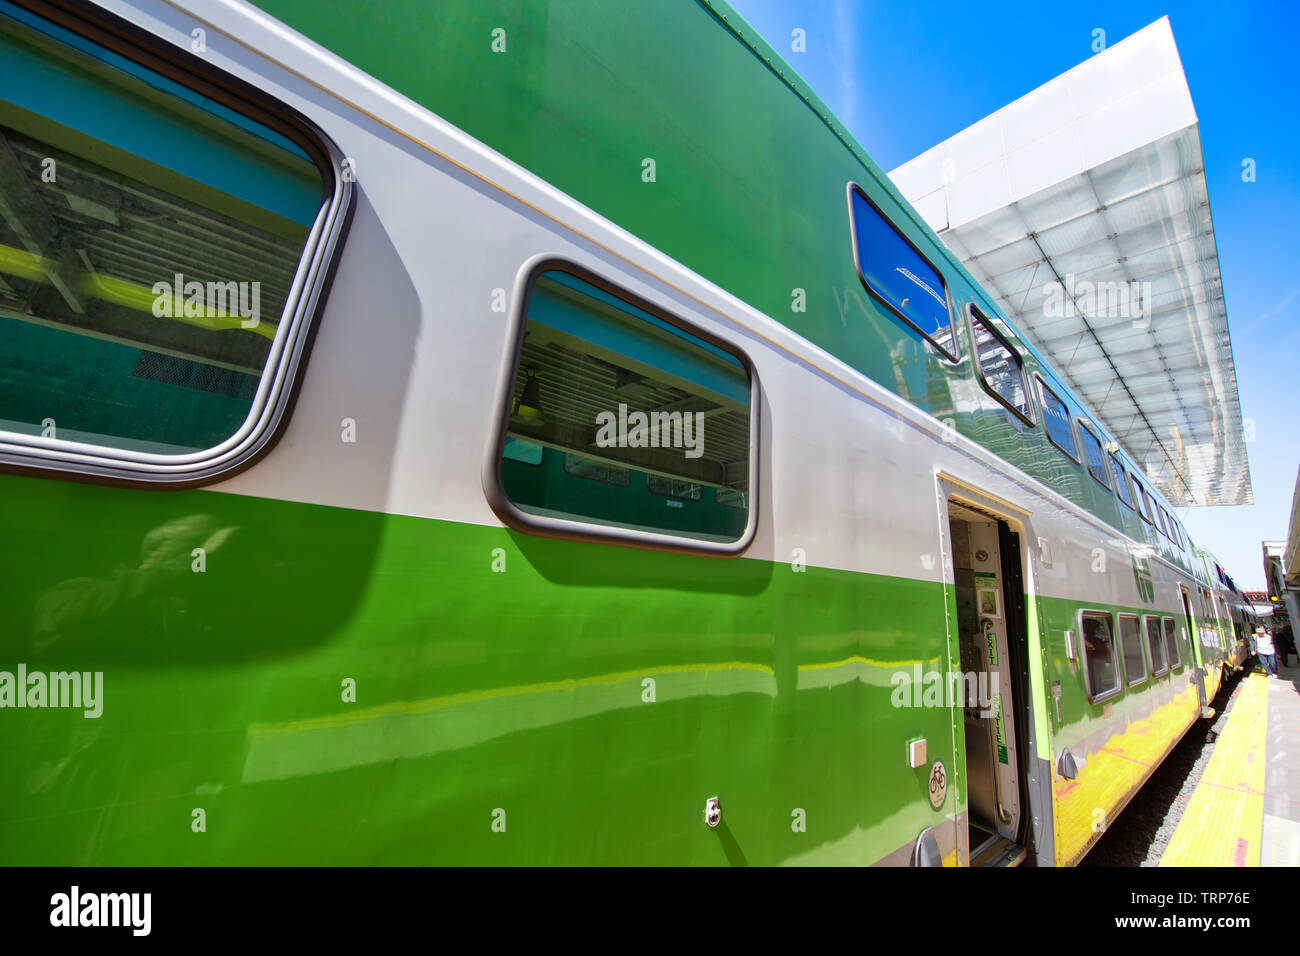 Toronto, Ontario, Canada-June 2, 2019: Toronto Go Train arriving at a platform at Union station terminal - Stock Image